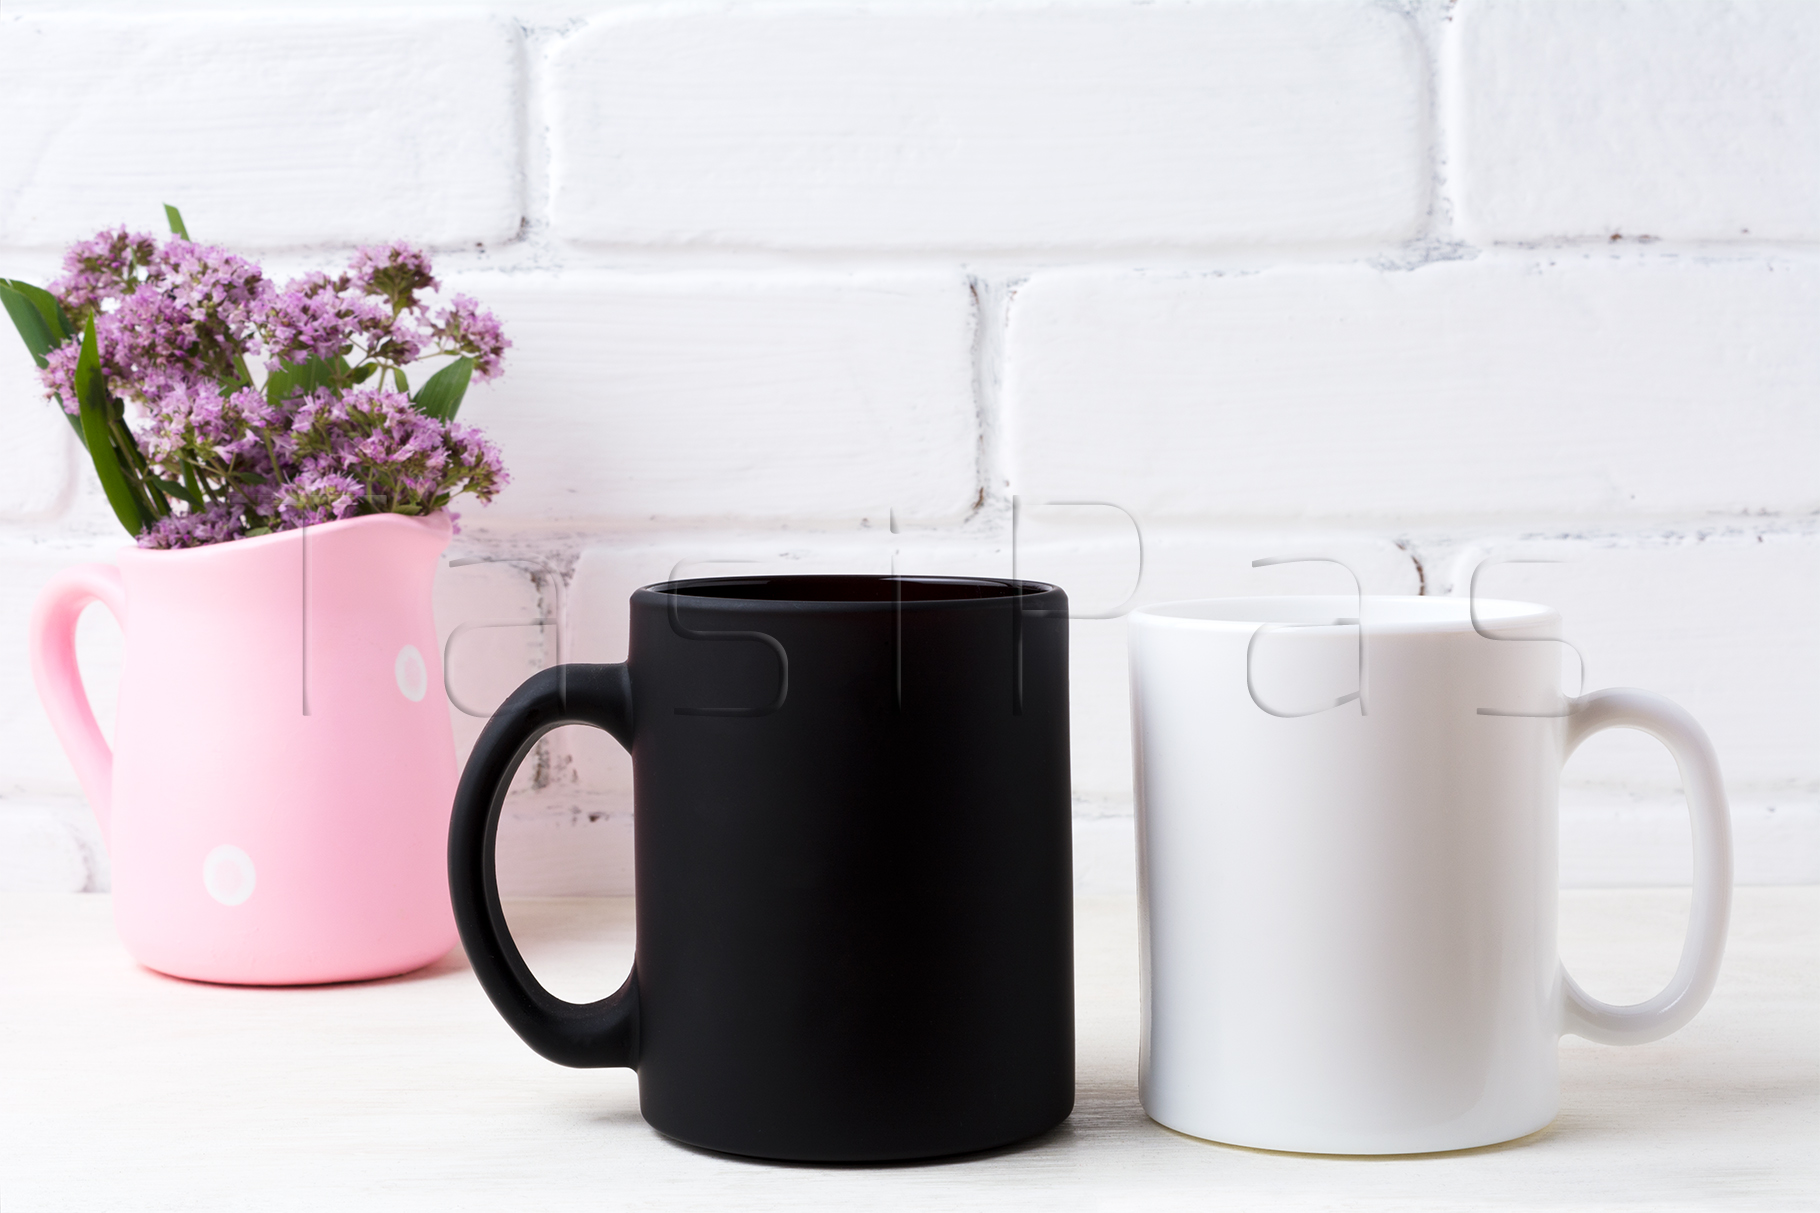 White and black coffee mug mockup with purple field flowers in polka dot pink rustic pitcher vase. example image 2